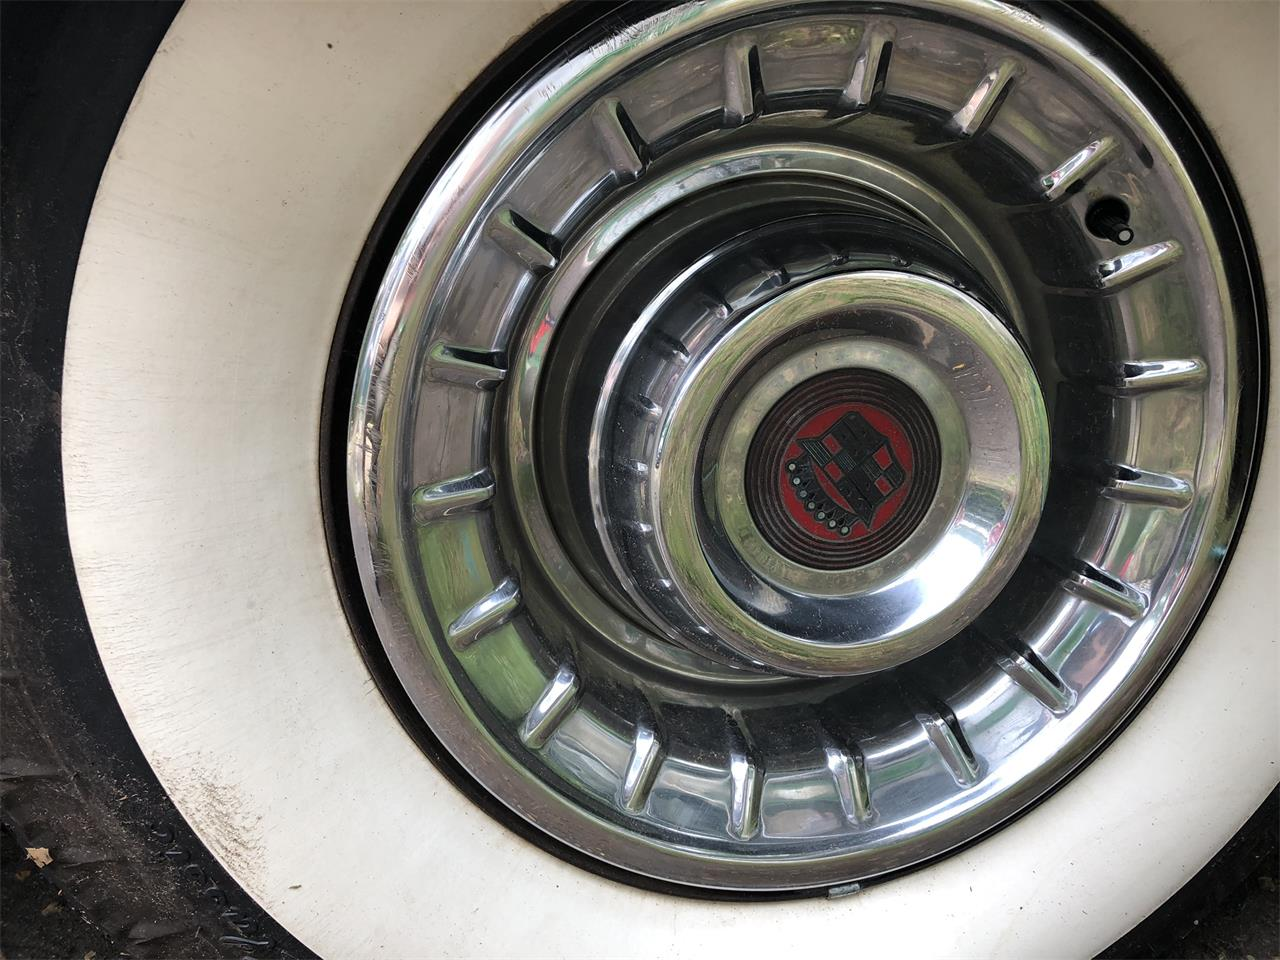 Large Picture of '56 Cadillac Coupe DeVille located in Georgia Offered by a Private Seller - Q1NT